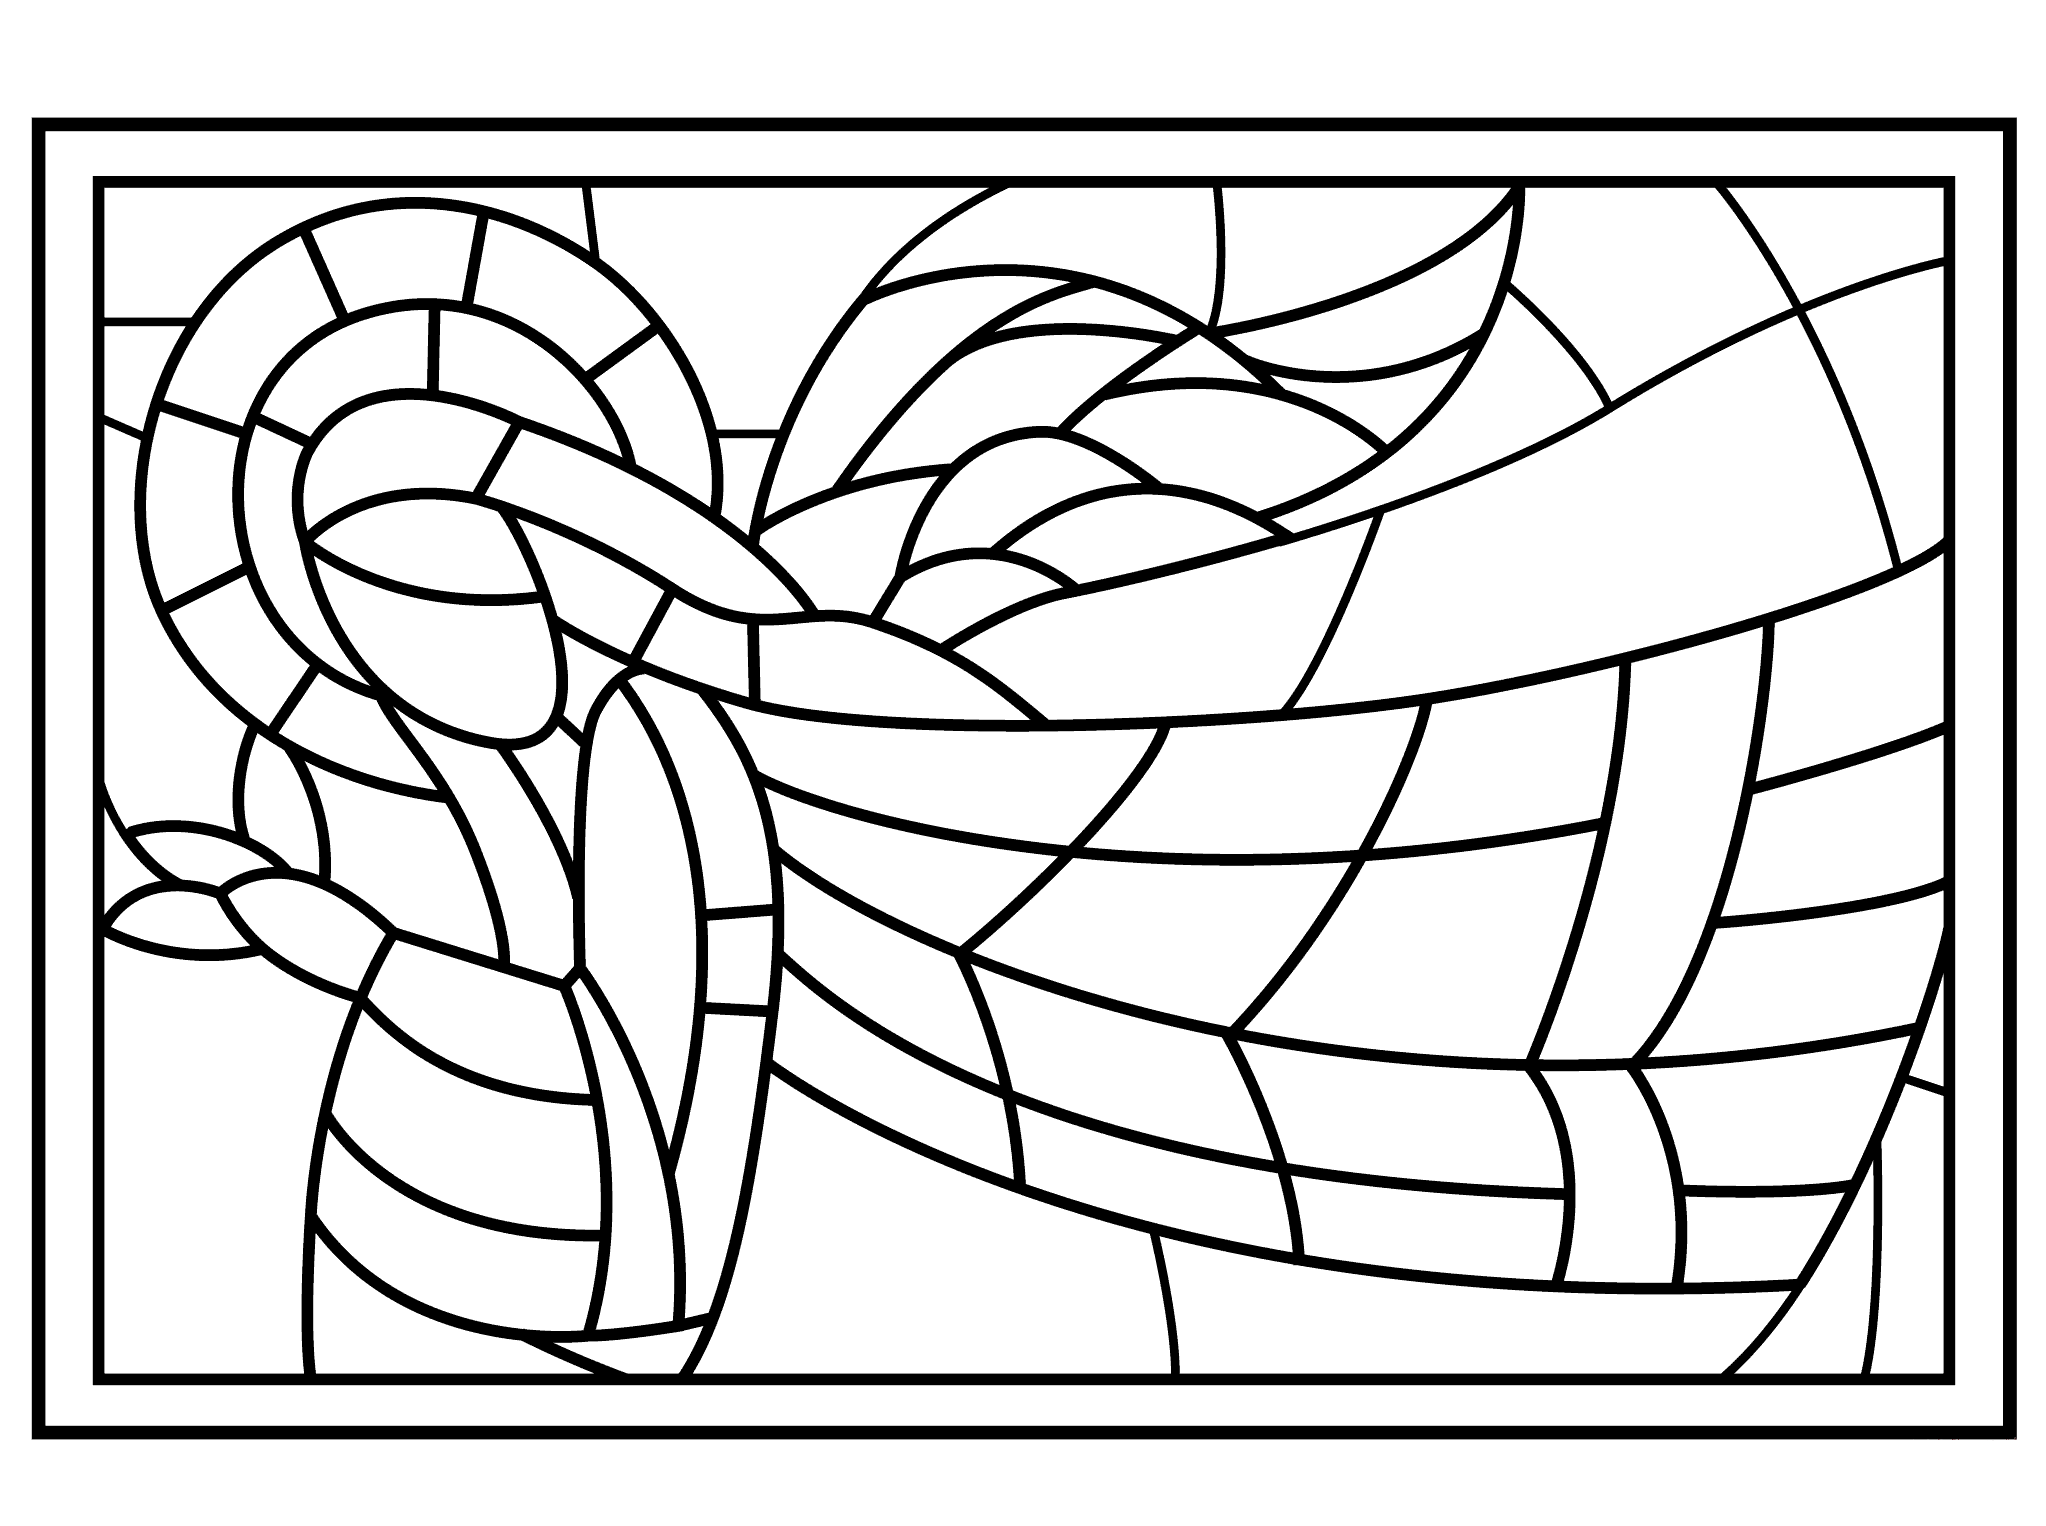 stained glass coloring pages for adults stained glass coloring pages for adults adults stained pages for coloring glass